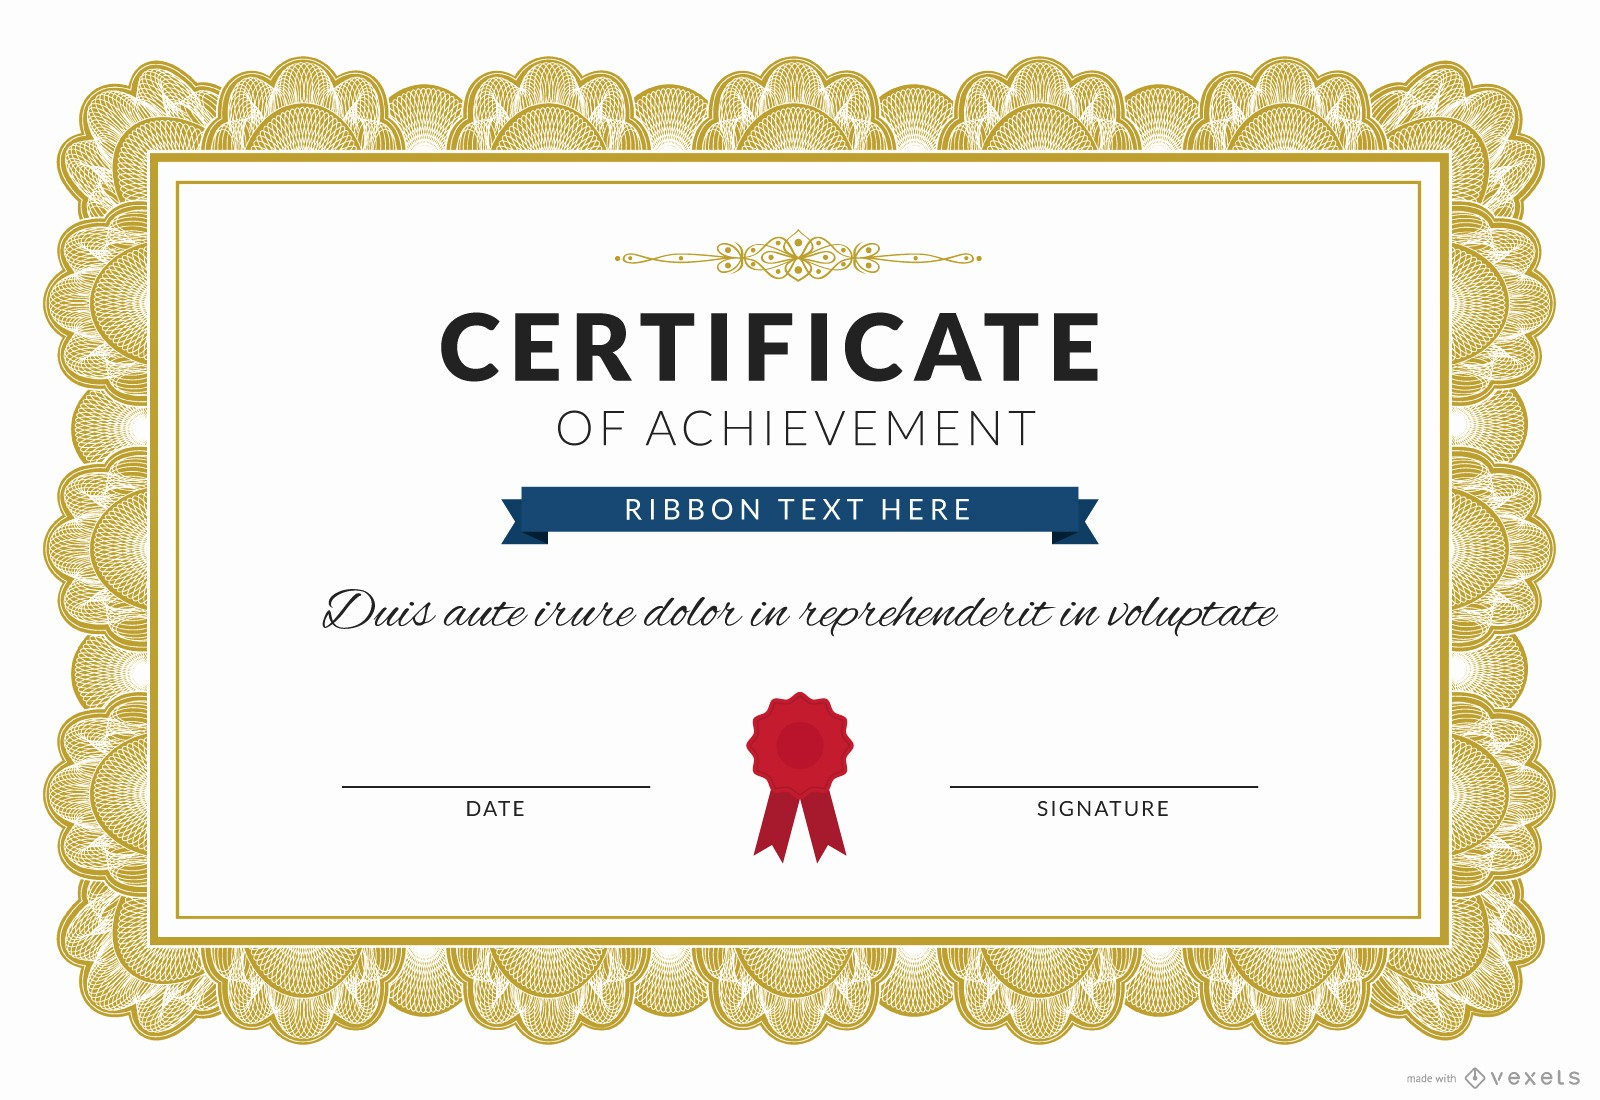 What is Certificate Of Achievement Awesome Certificate Of Achievement Maker Editable Design